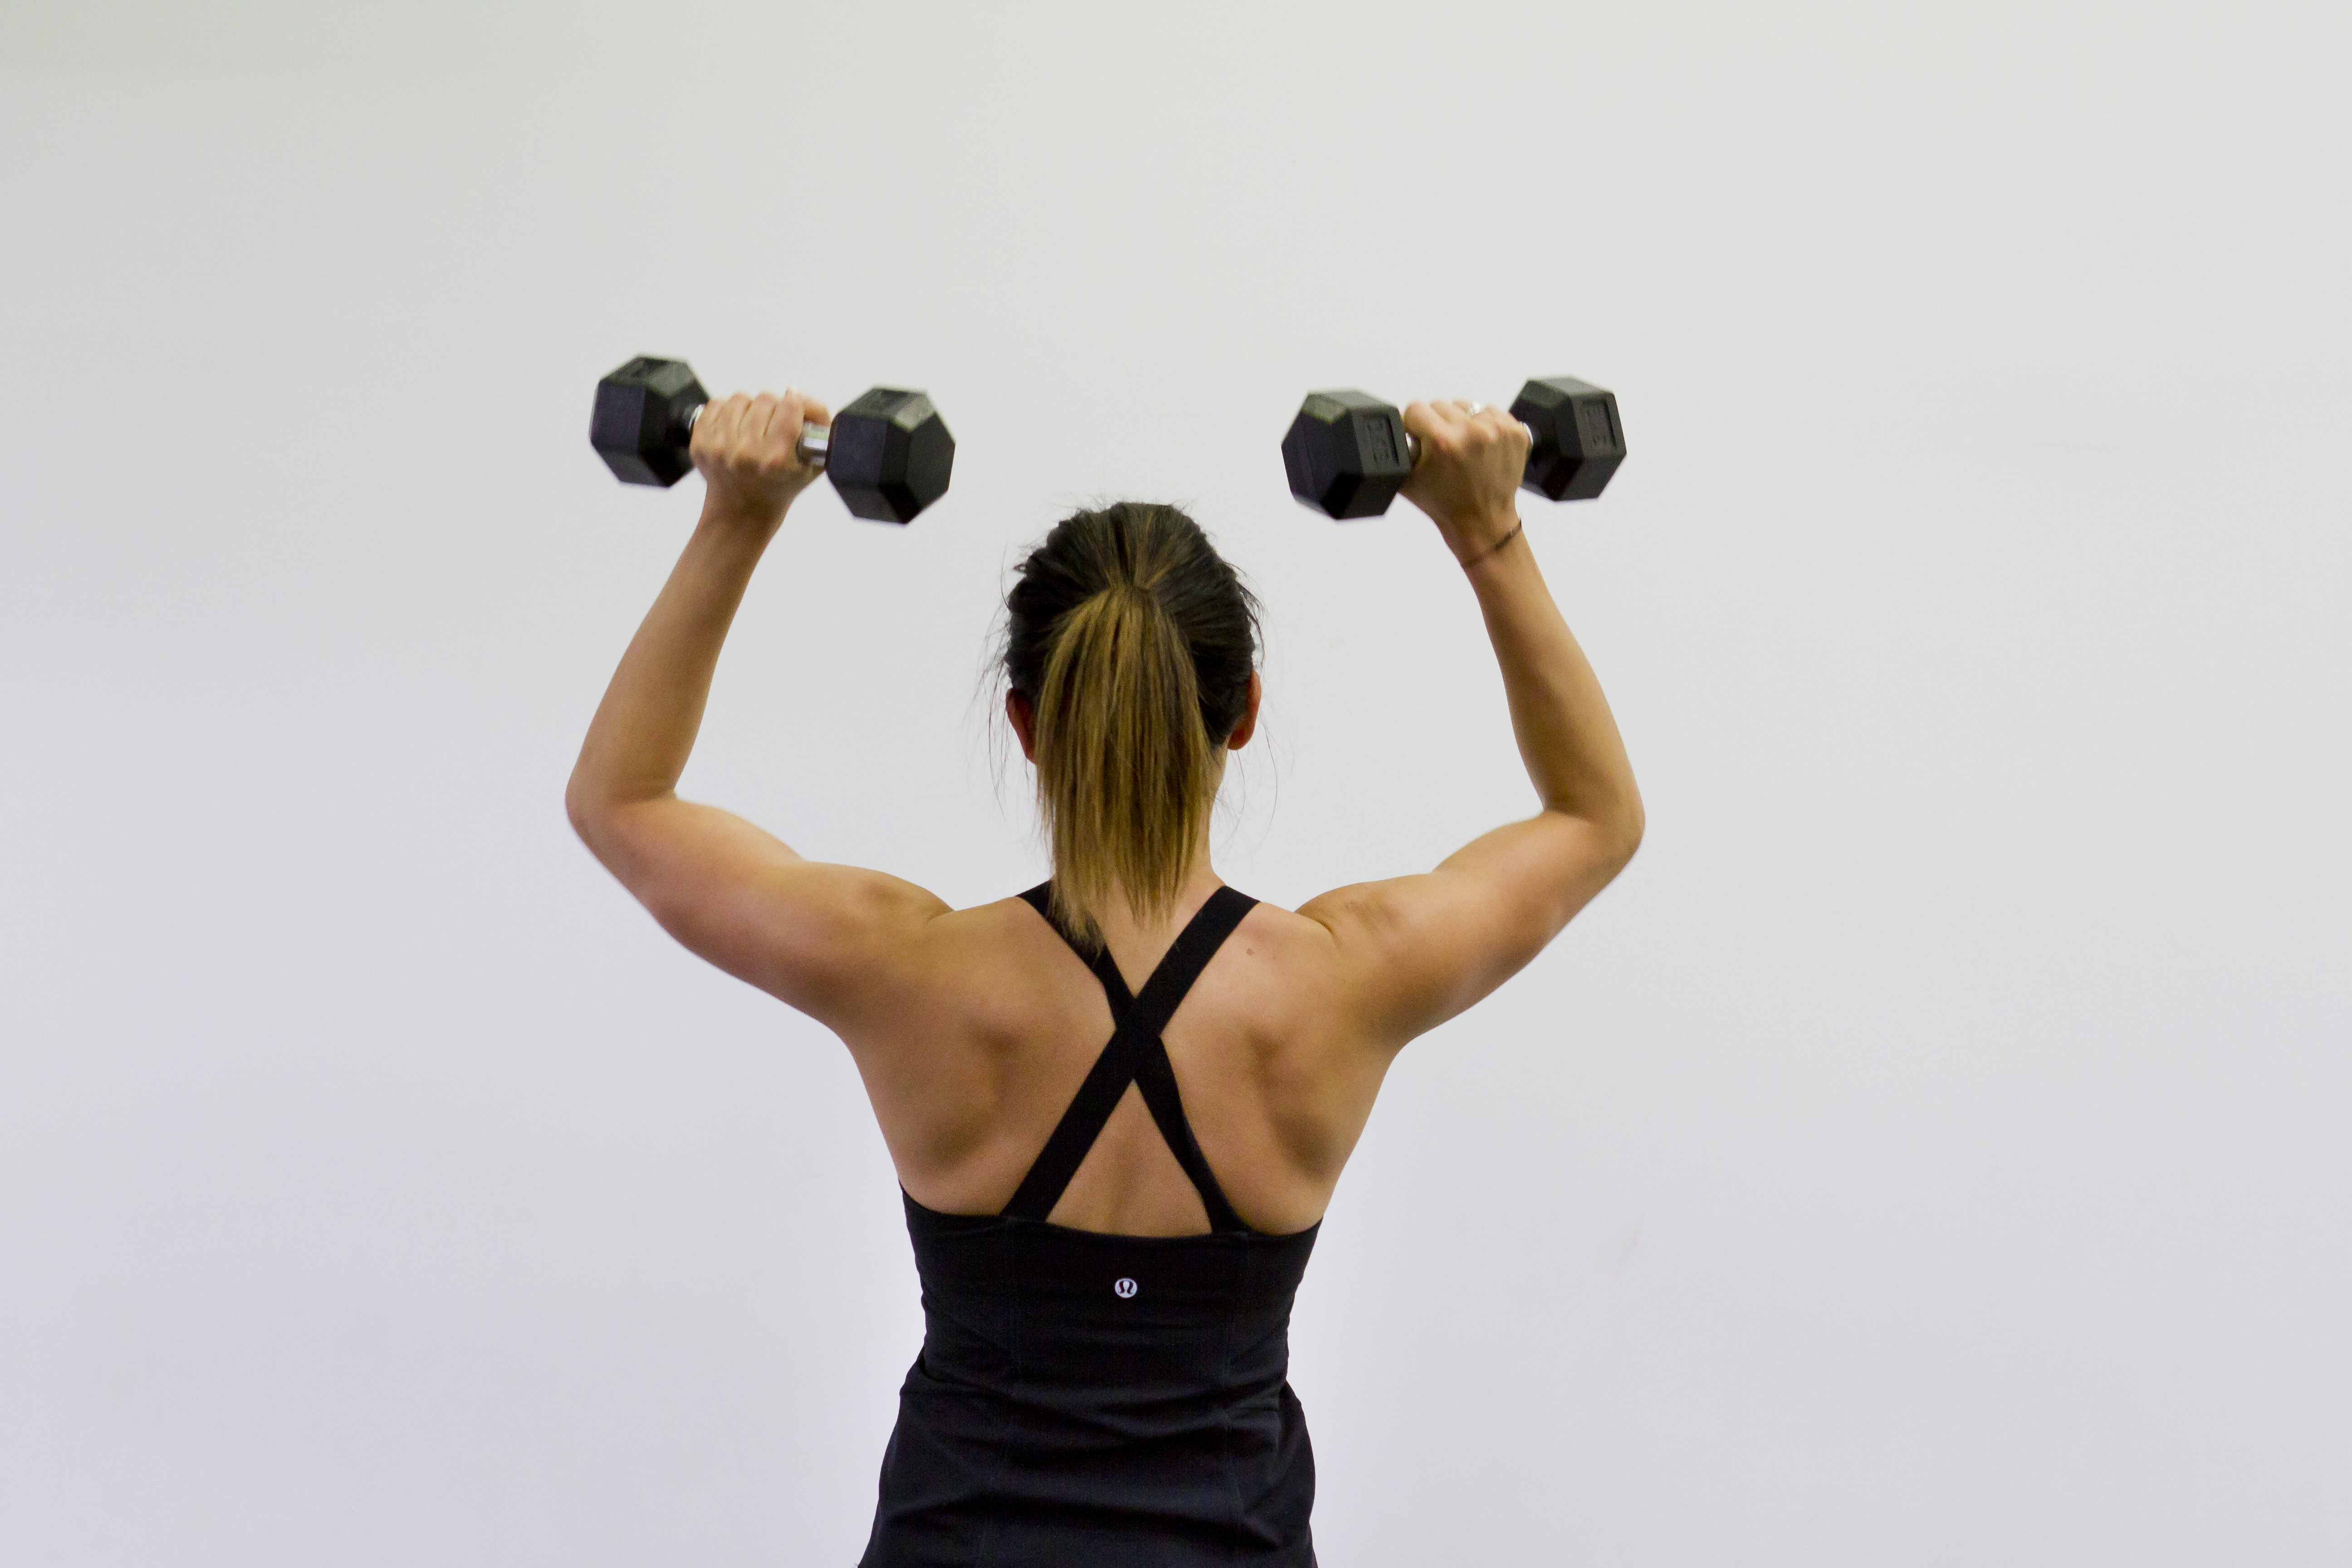 Trifusion fitness lady performing military press with dumbbells